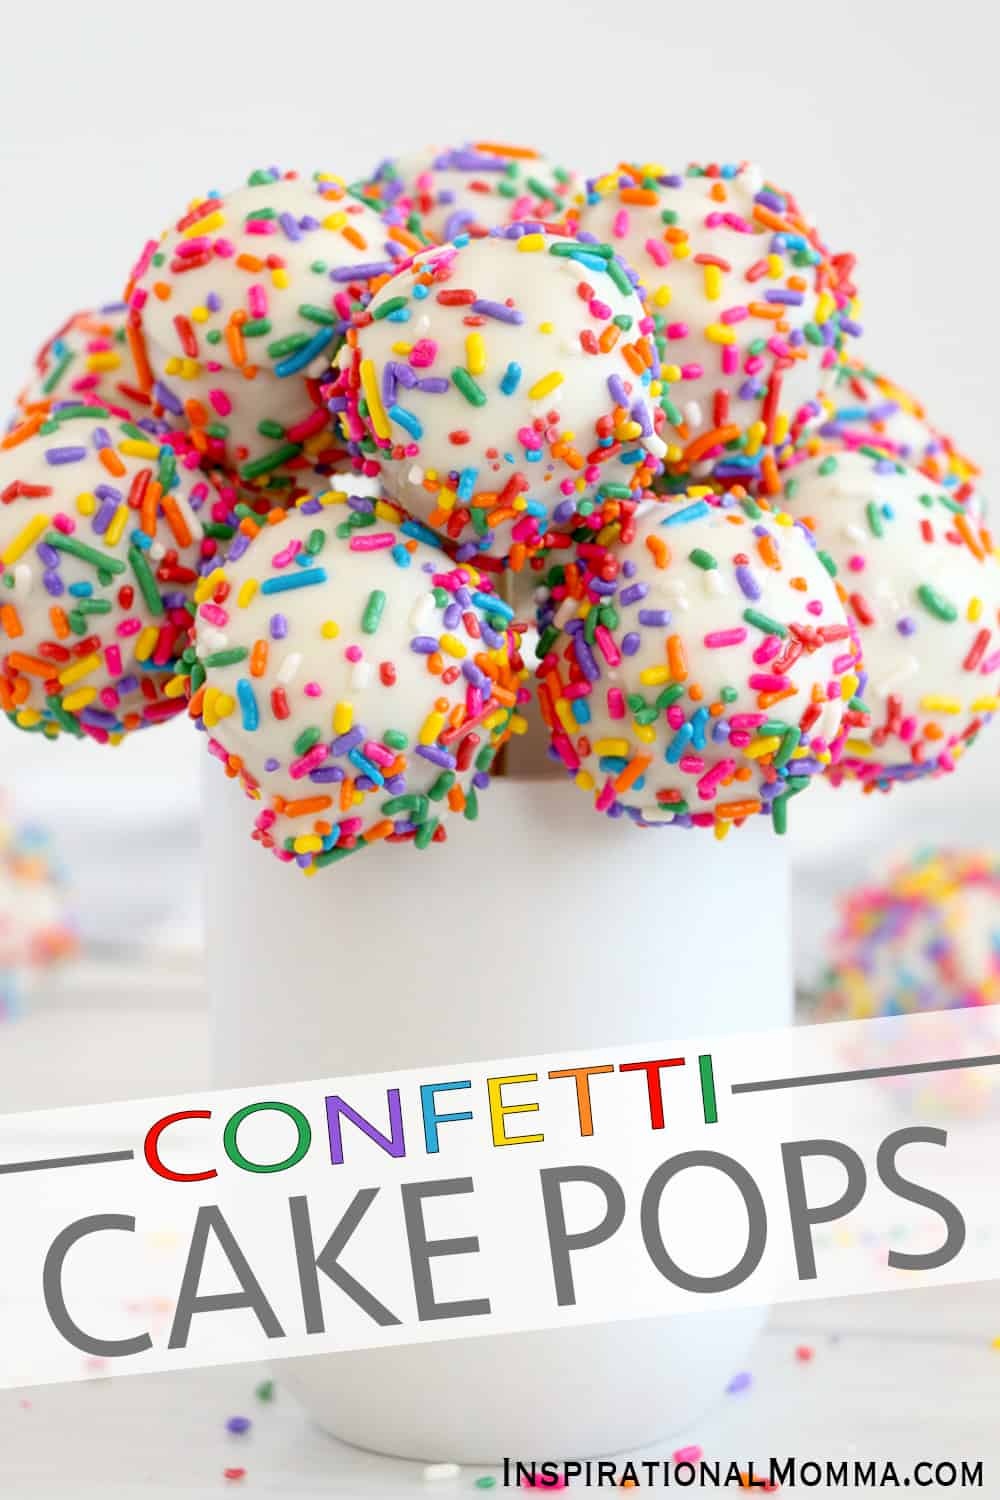 Make every day a celebration with this quick, easy-to-make Confetti Cake Pop Recipe!  Kids of all ages will love to make these sweet, delicious treats! #inspirationalmomma #cakepops #recipe #recipes #dessert #desserts #cakepoprecipe #confetti